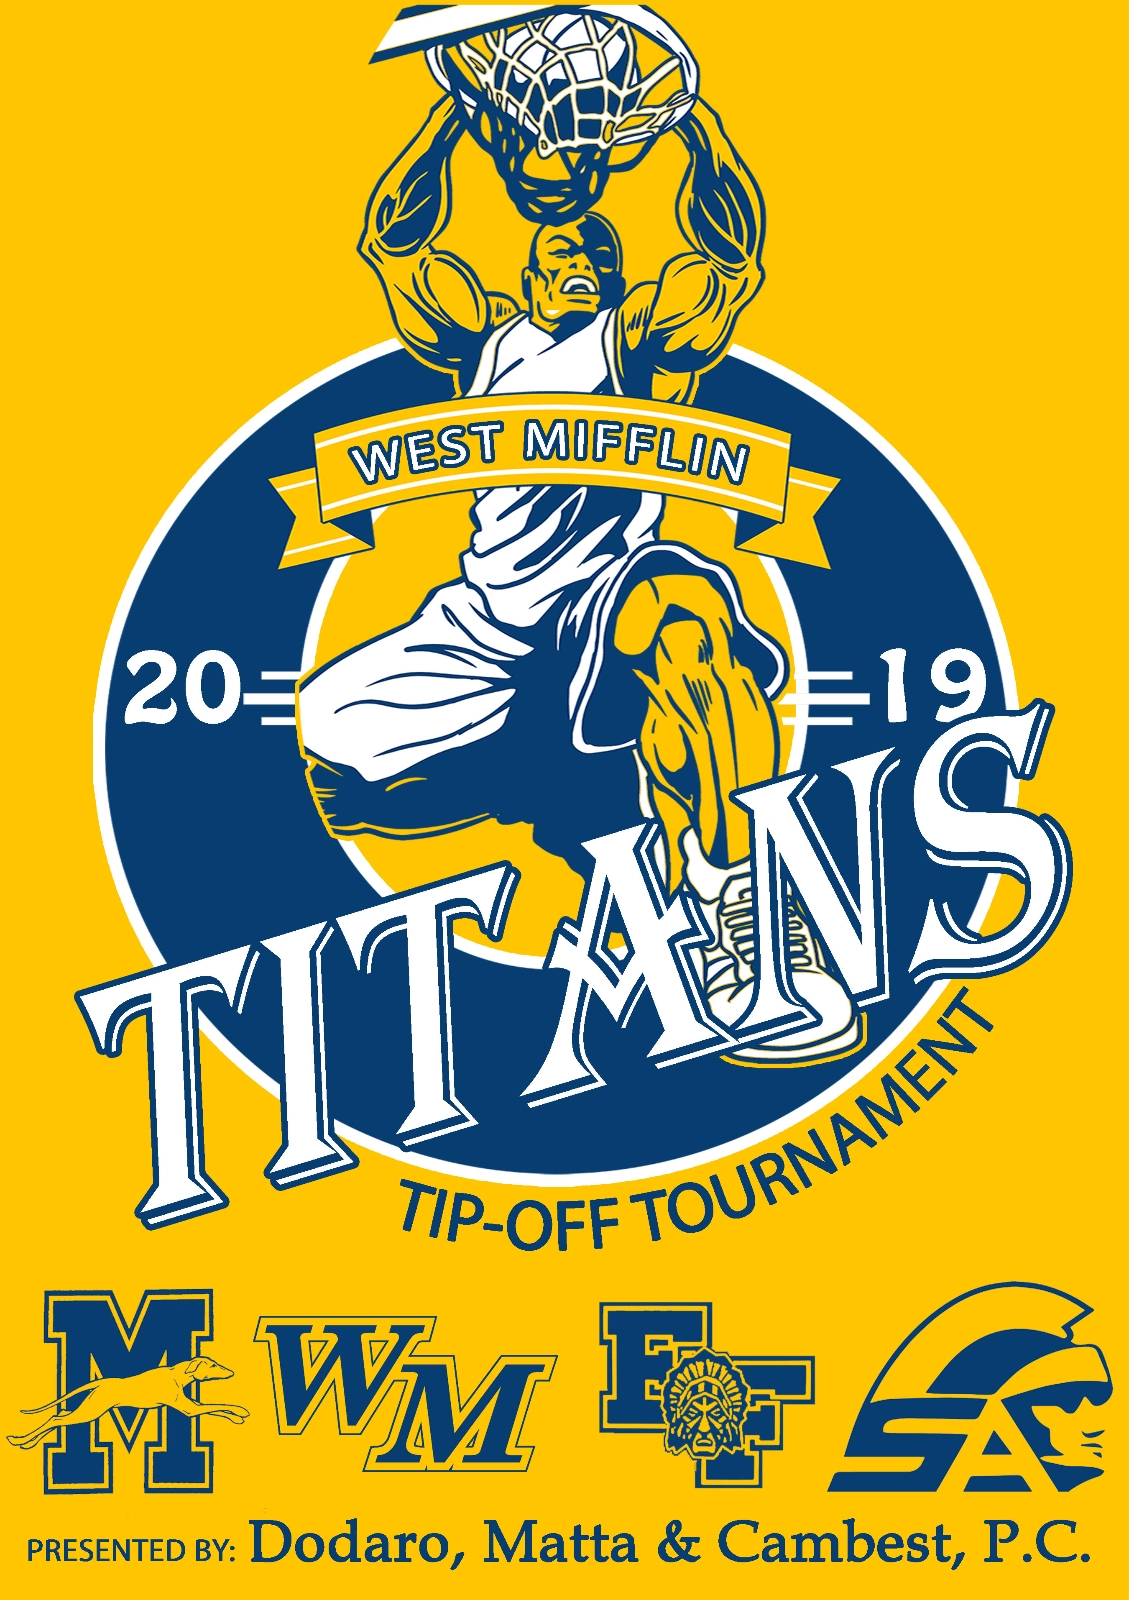 West Mifflin Tip-Off Tournament